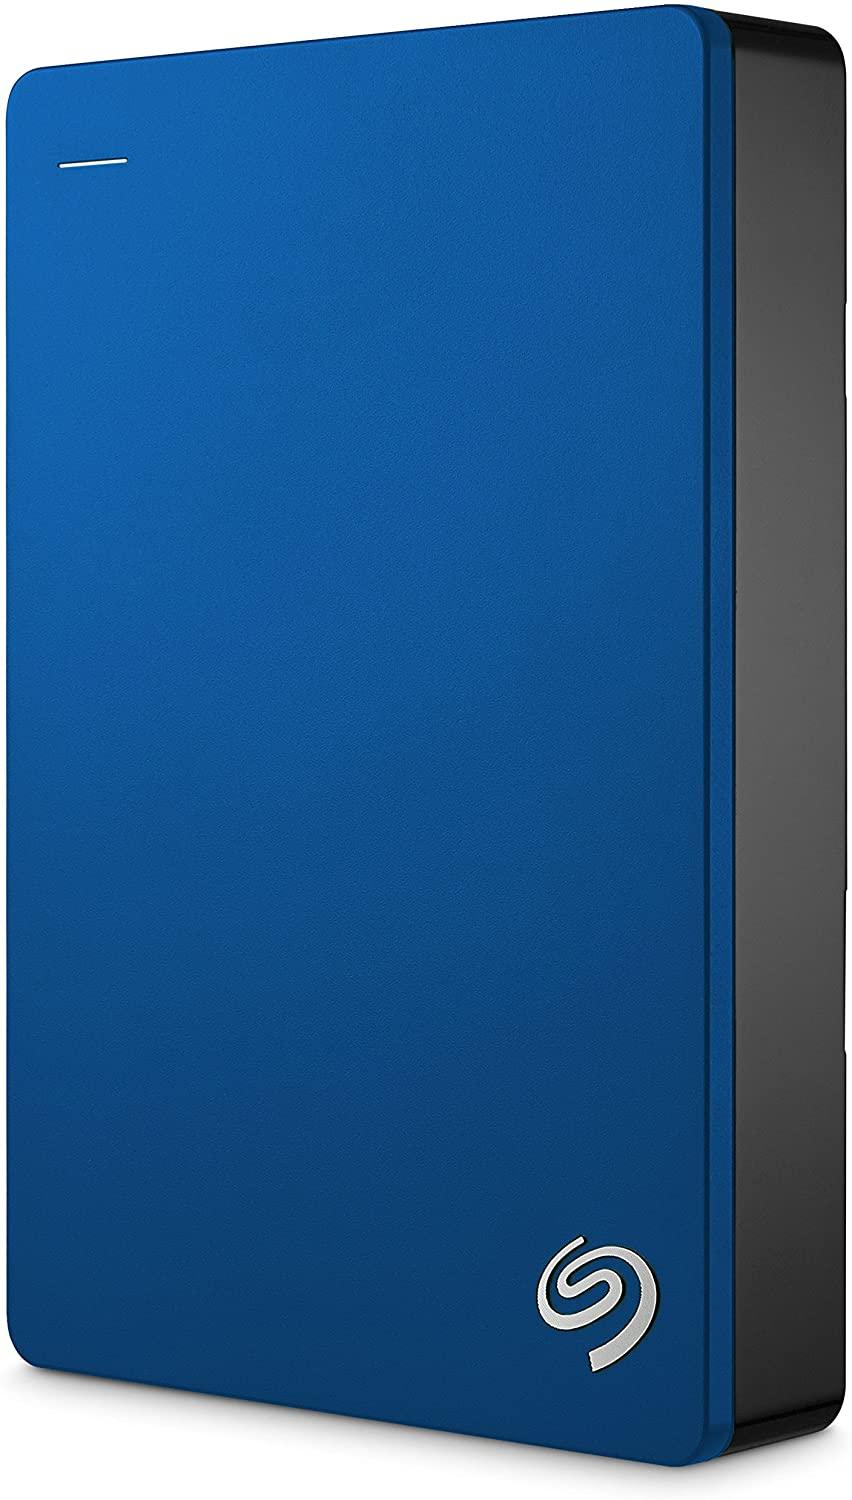 Seagate Backup Plus Portable Drive, 5TB, Blue